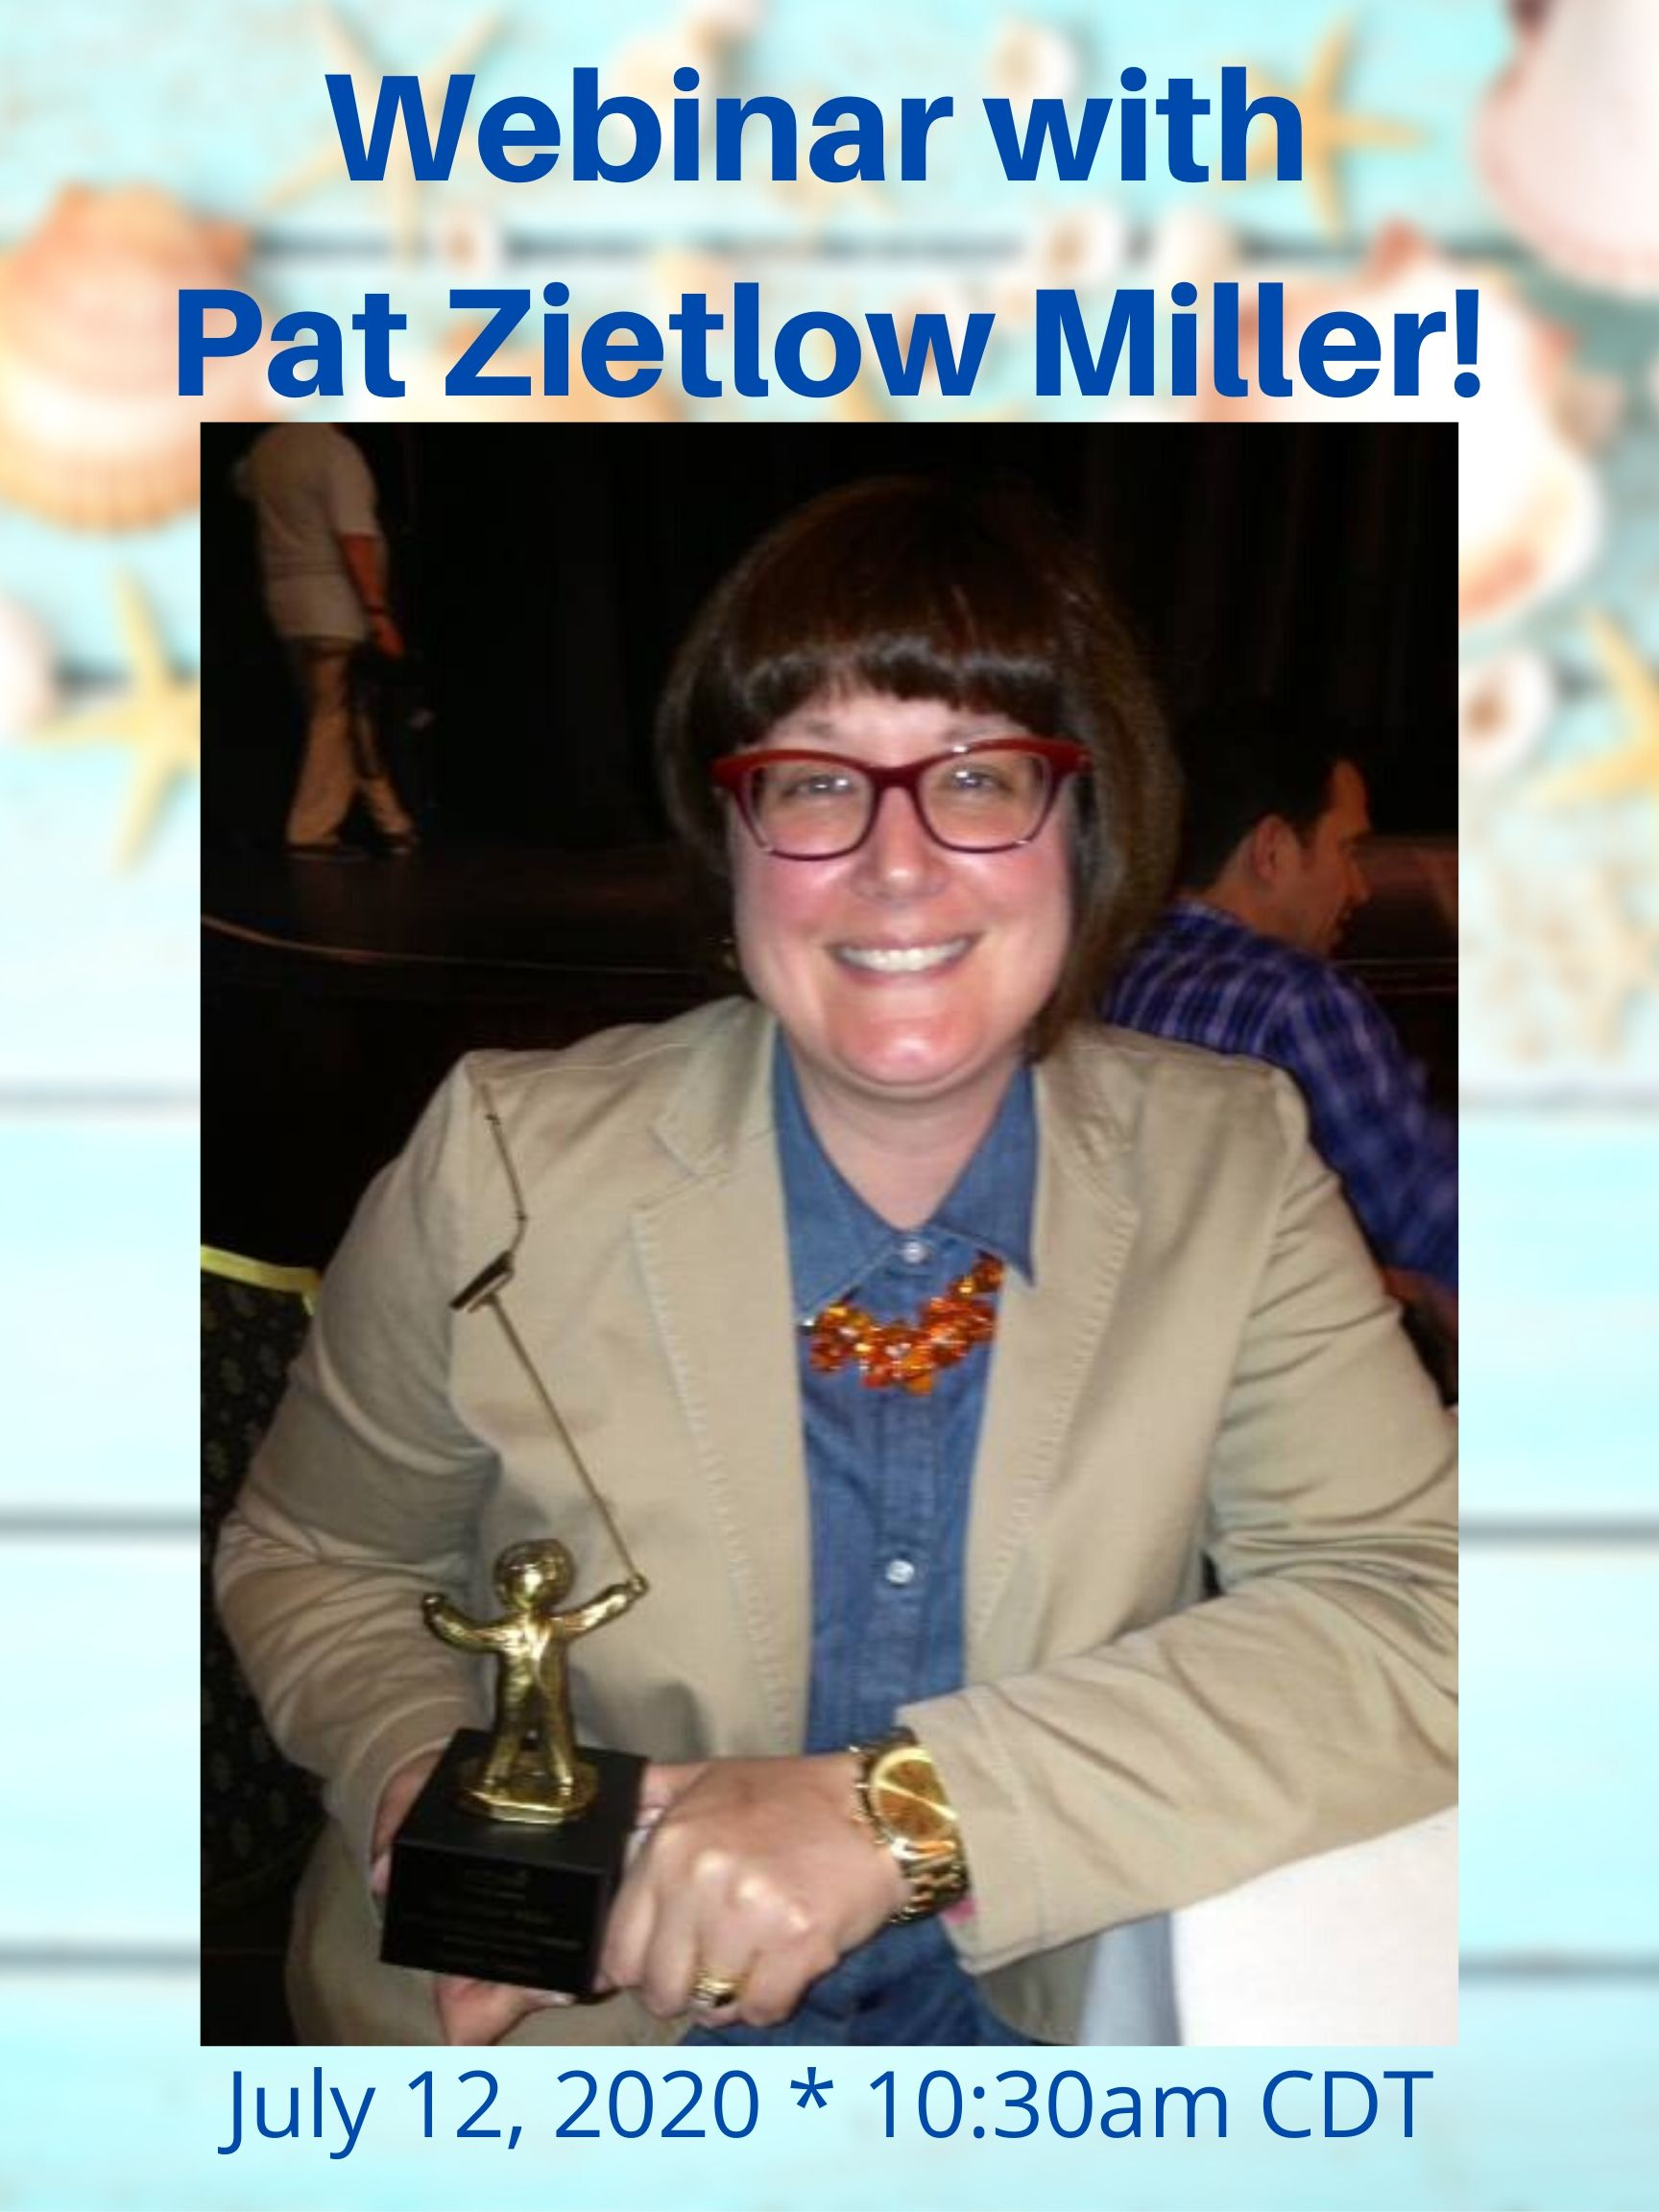 Webinar With Pat Zietlow Miller Mark your calendars! July 12, 20209 10:30 CDT/11:30 EDT How to be Inspired by the Masters. No Stealing Required.